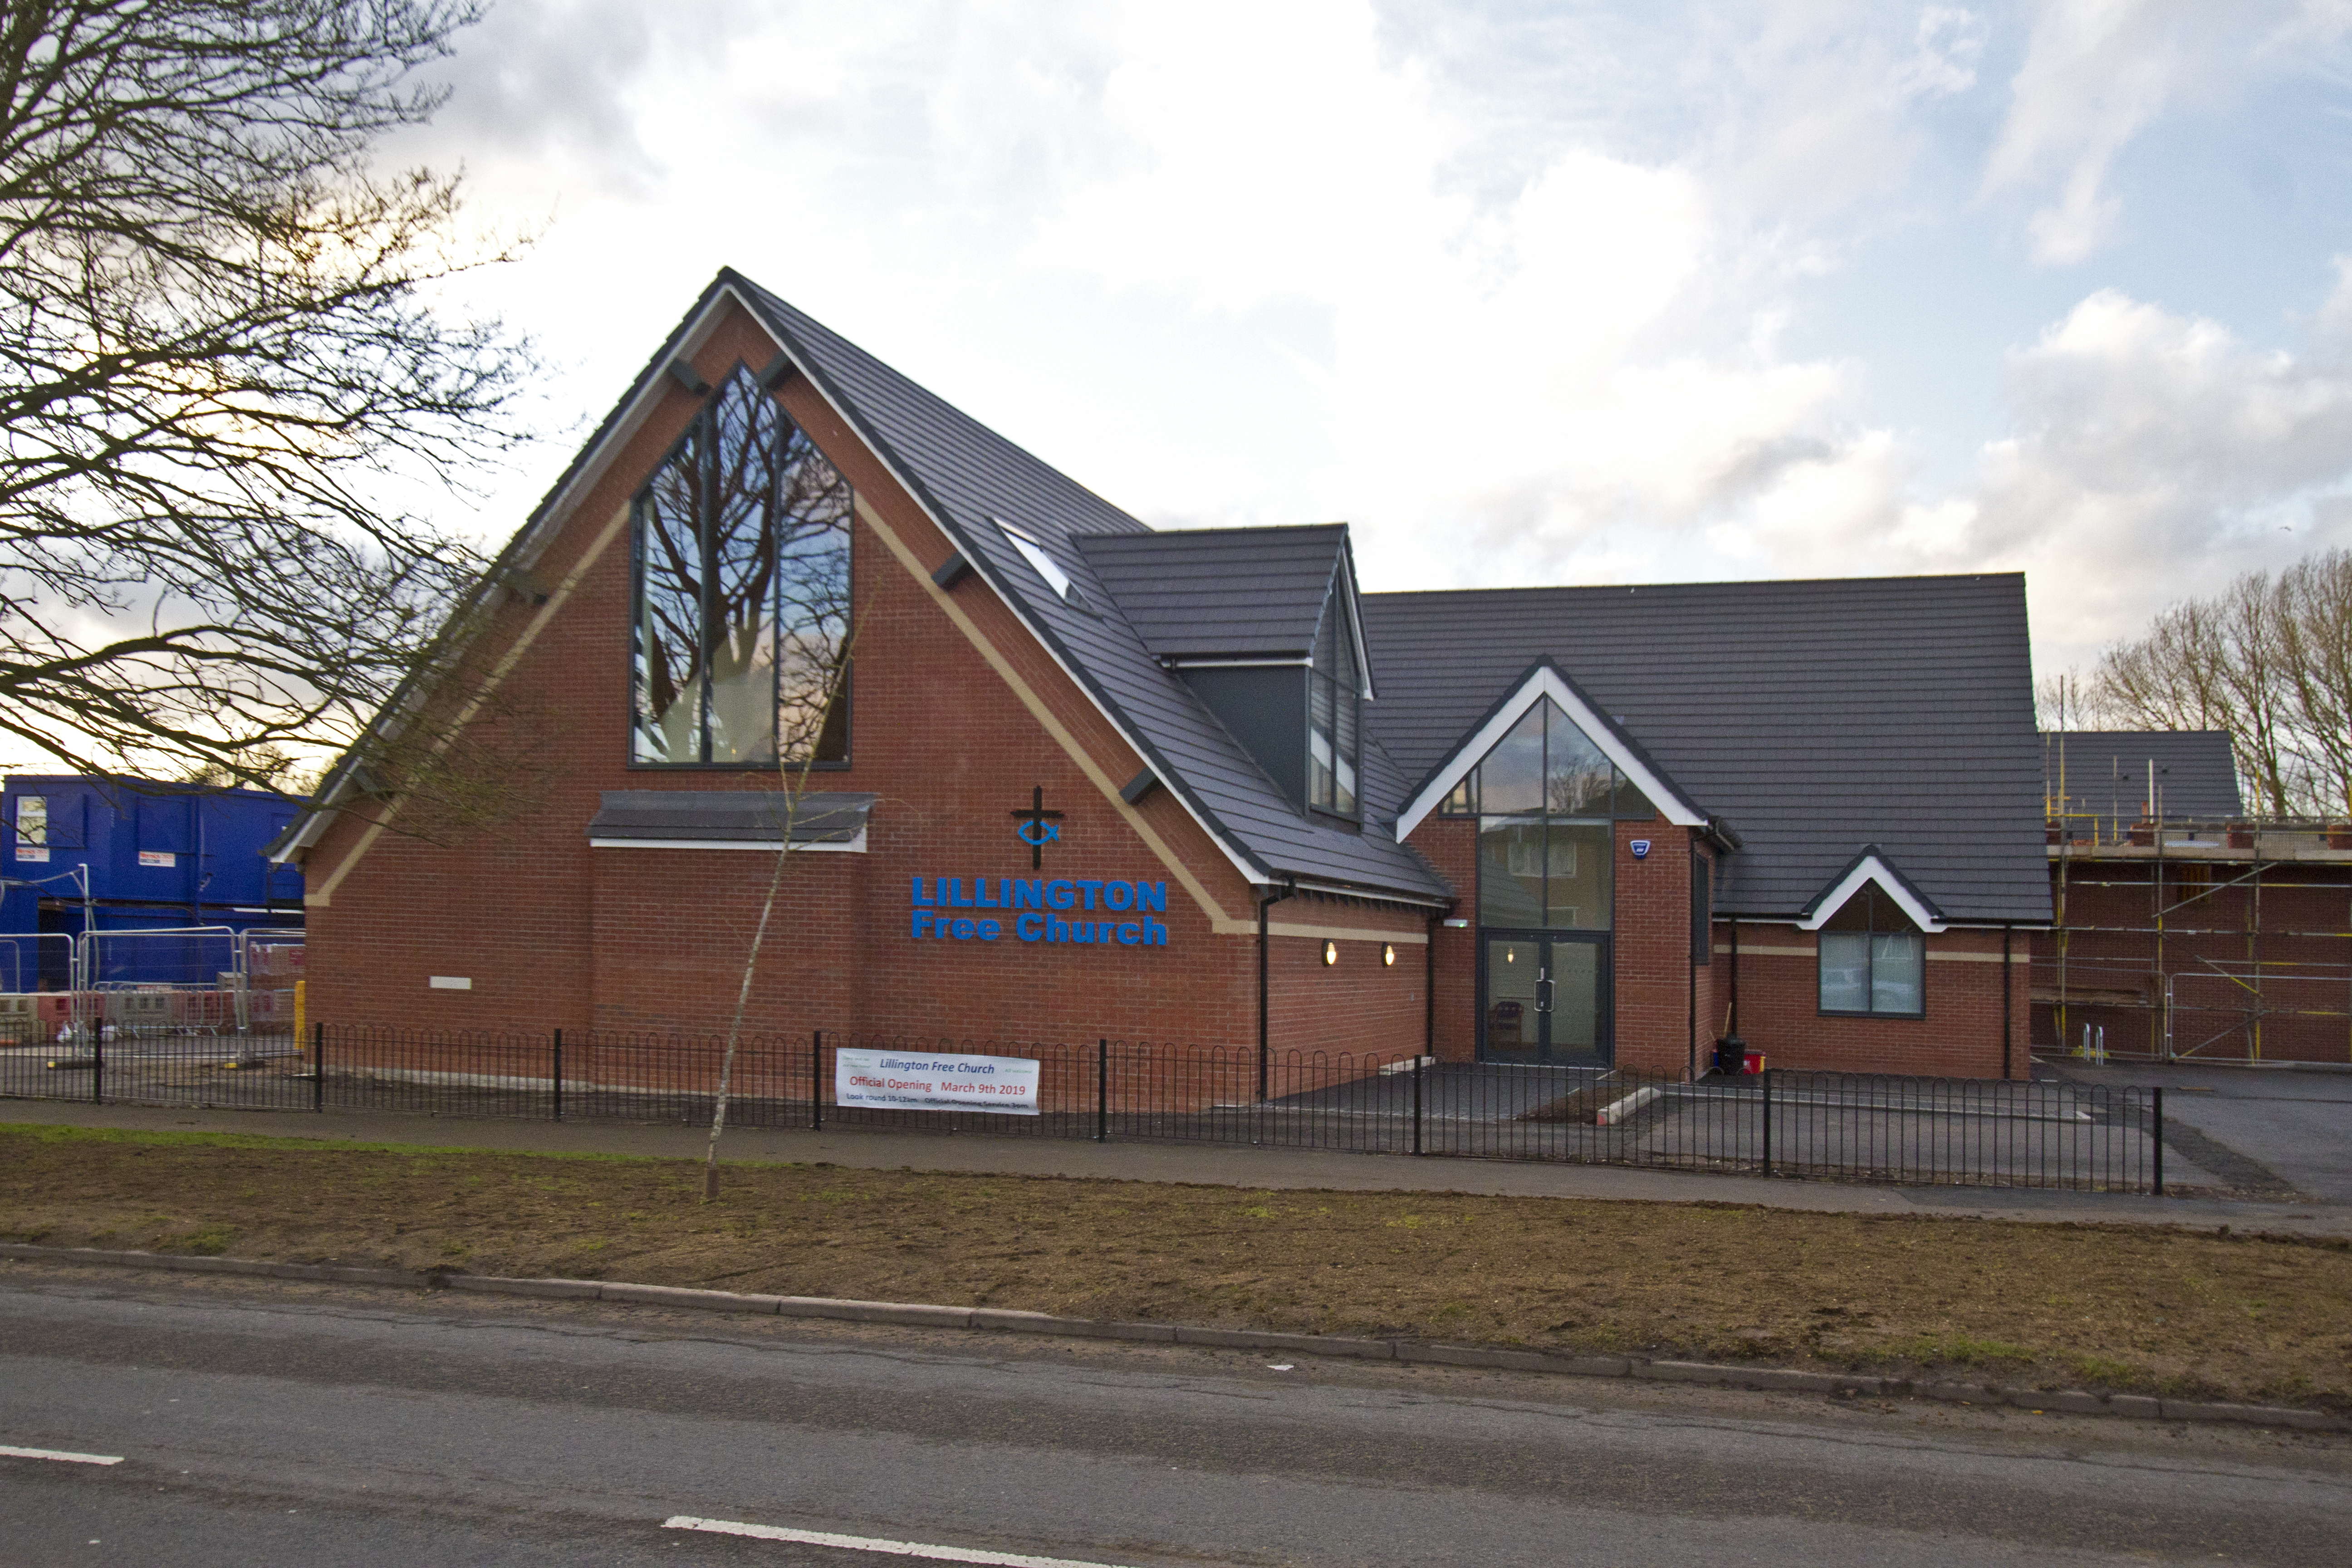 Welcome to Lillington Free Church, your United Reformed Church in Leamington Spa